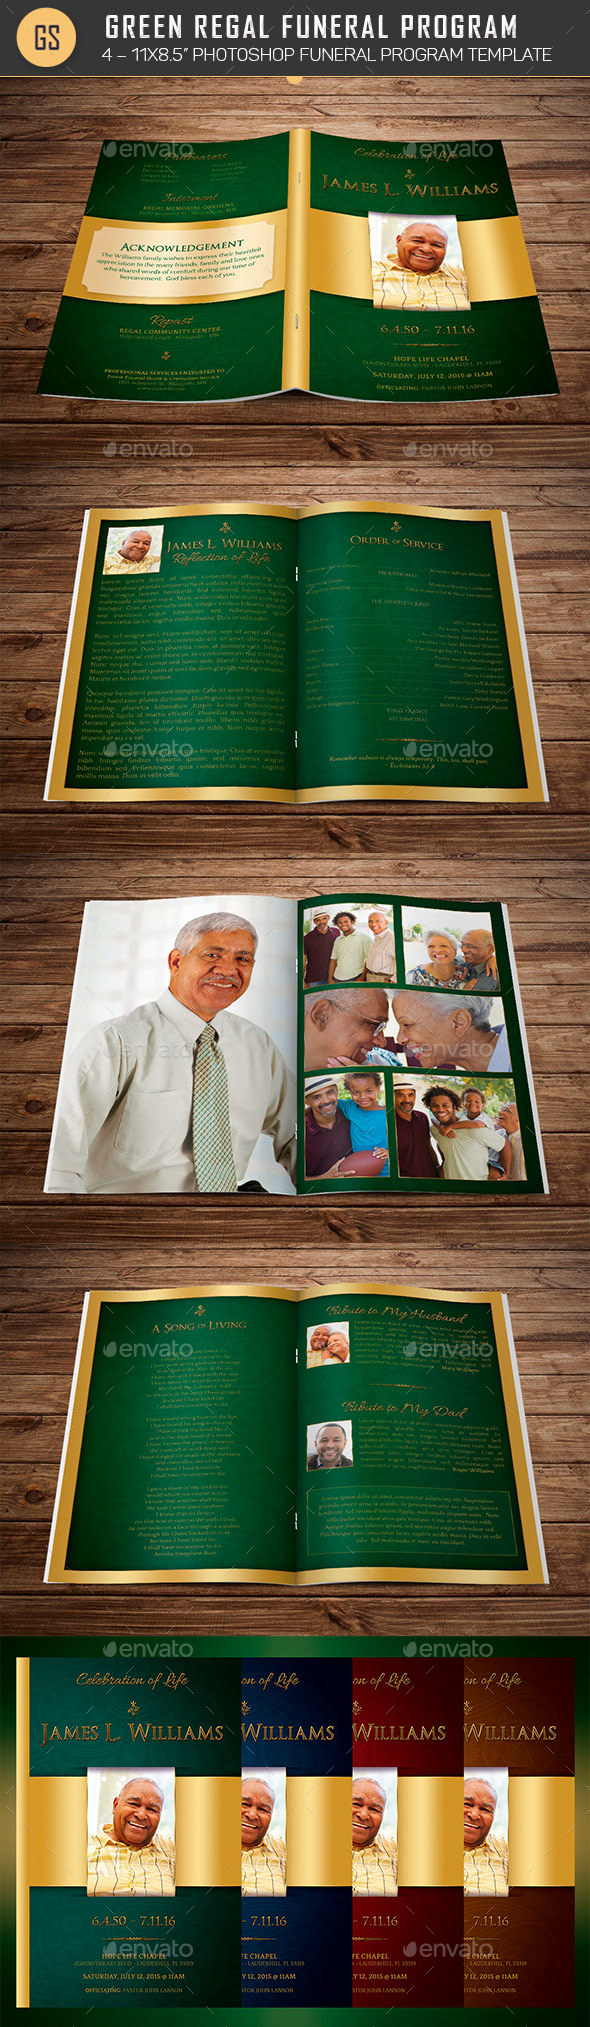 Green Regal Funeral Program Template - Informational Brochures